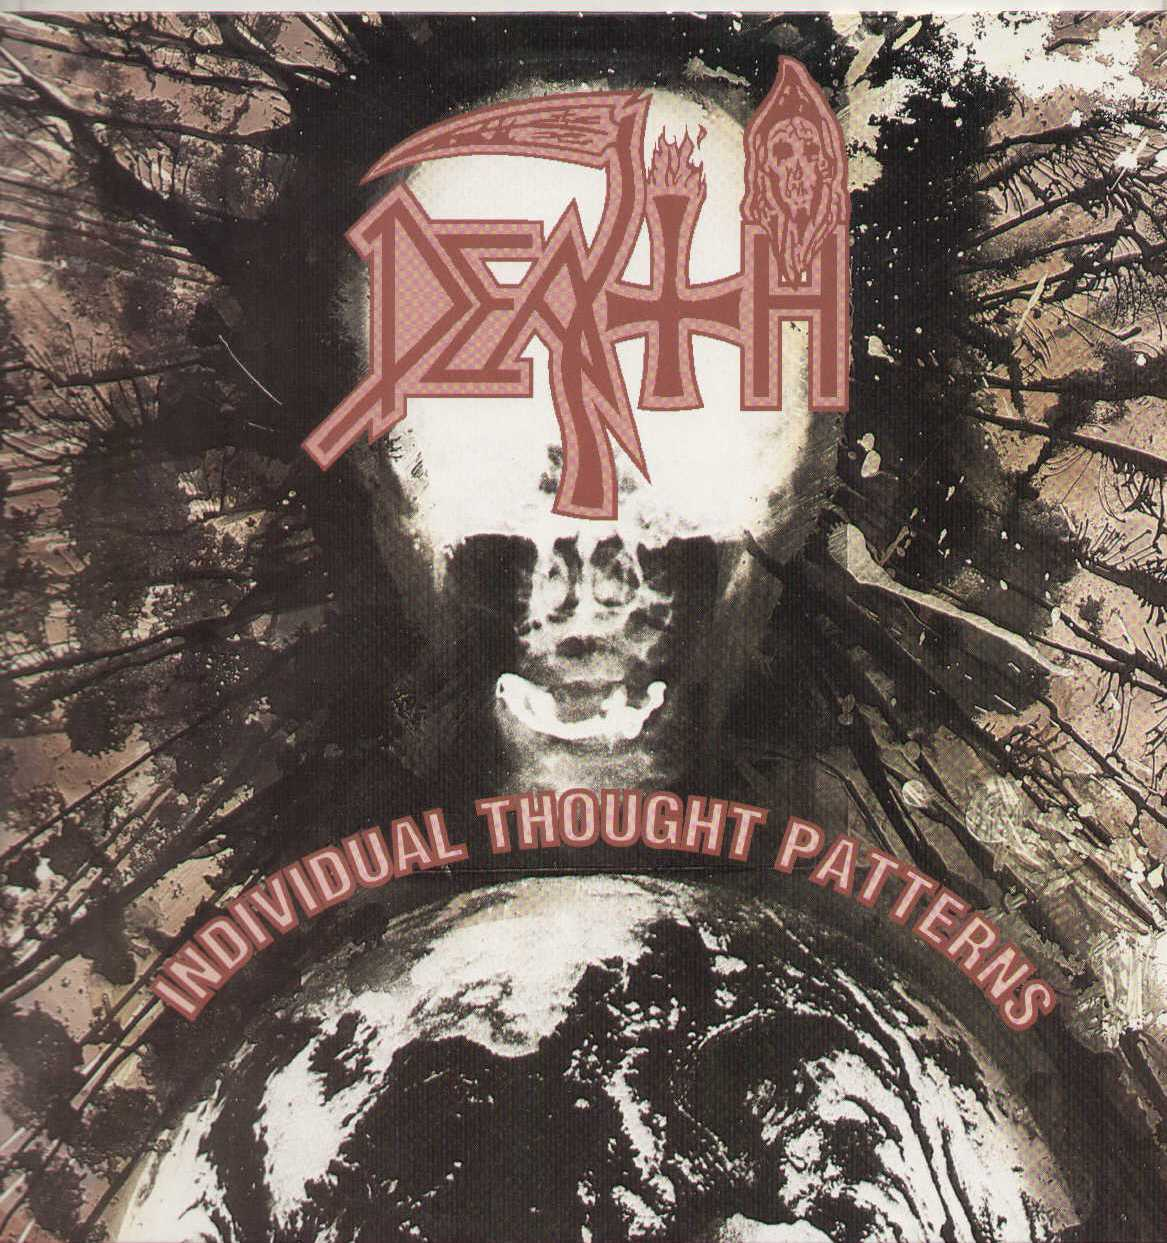 Death - Overactive Imagination [Individual Thought Patterns 1993]